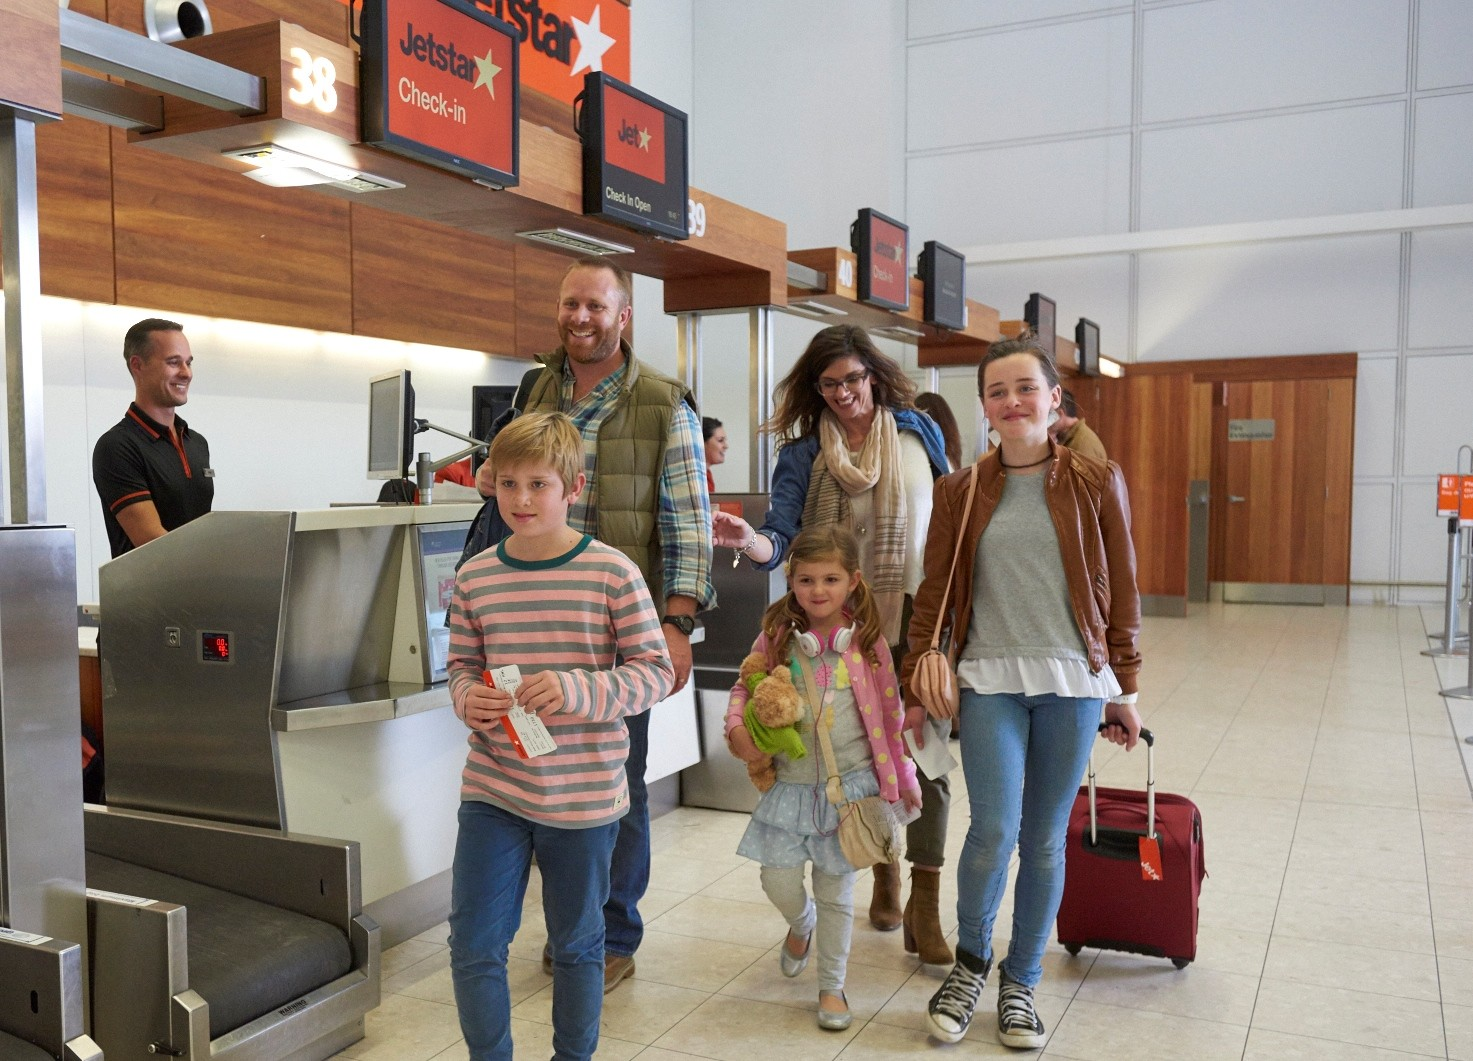 Summer is the busiest travel period for Jetstar